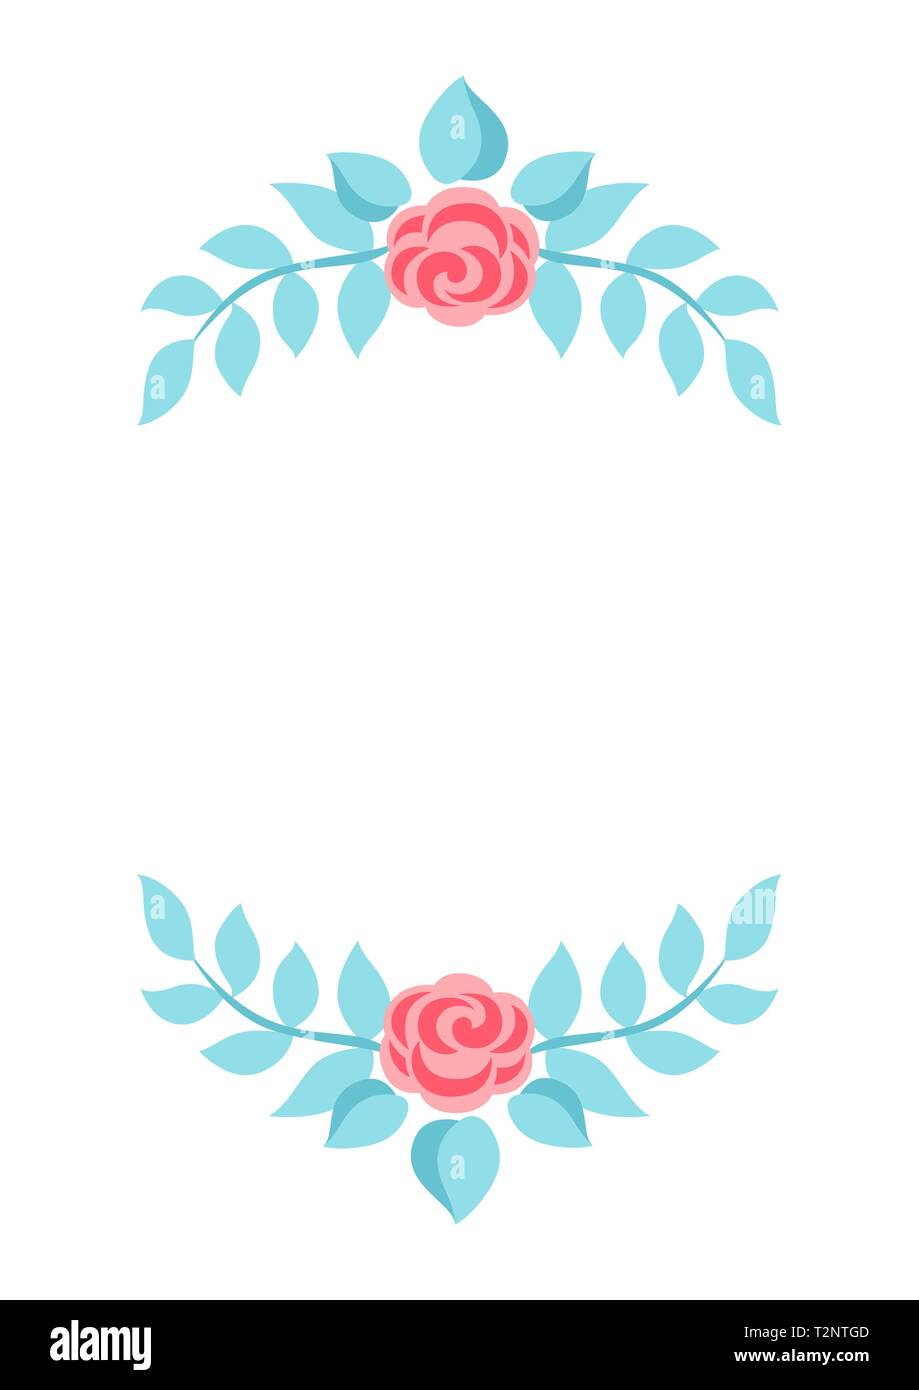 Frame with gentle flowers. Beautiful decorative natural plants, buds and leaves. - Stock Image